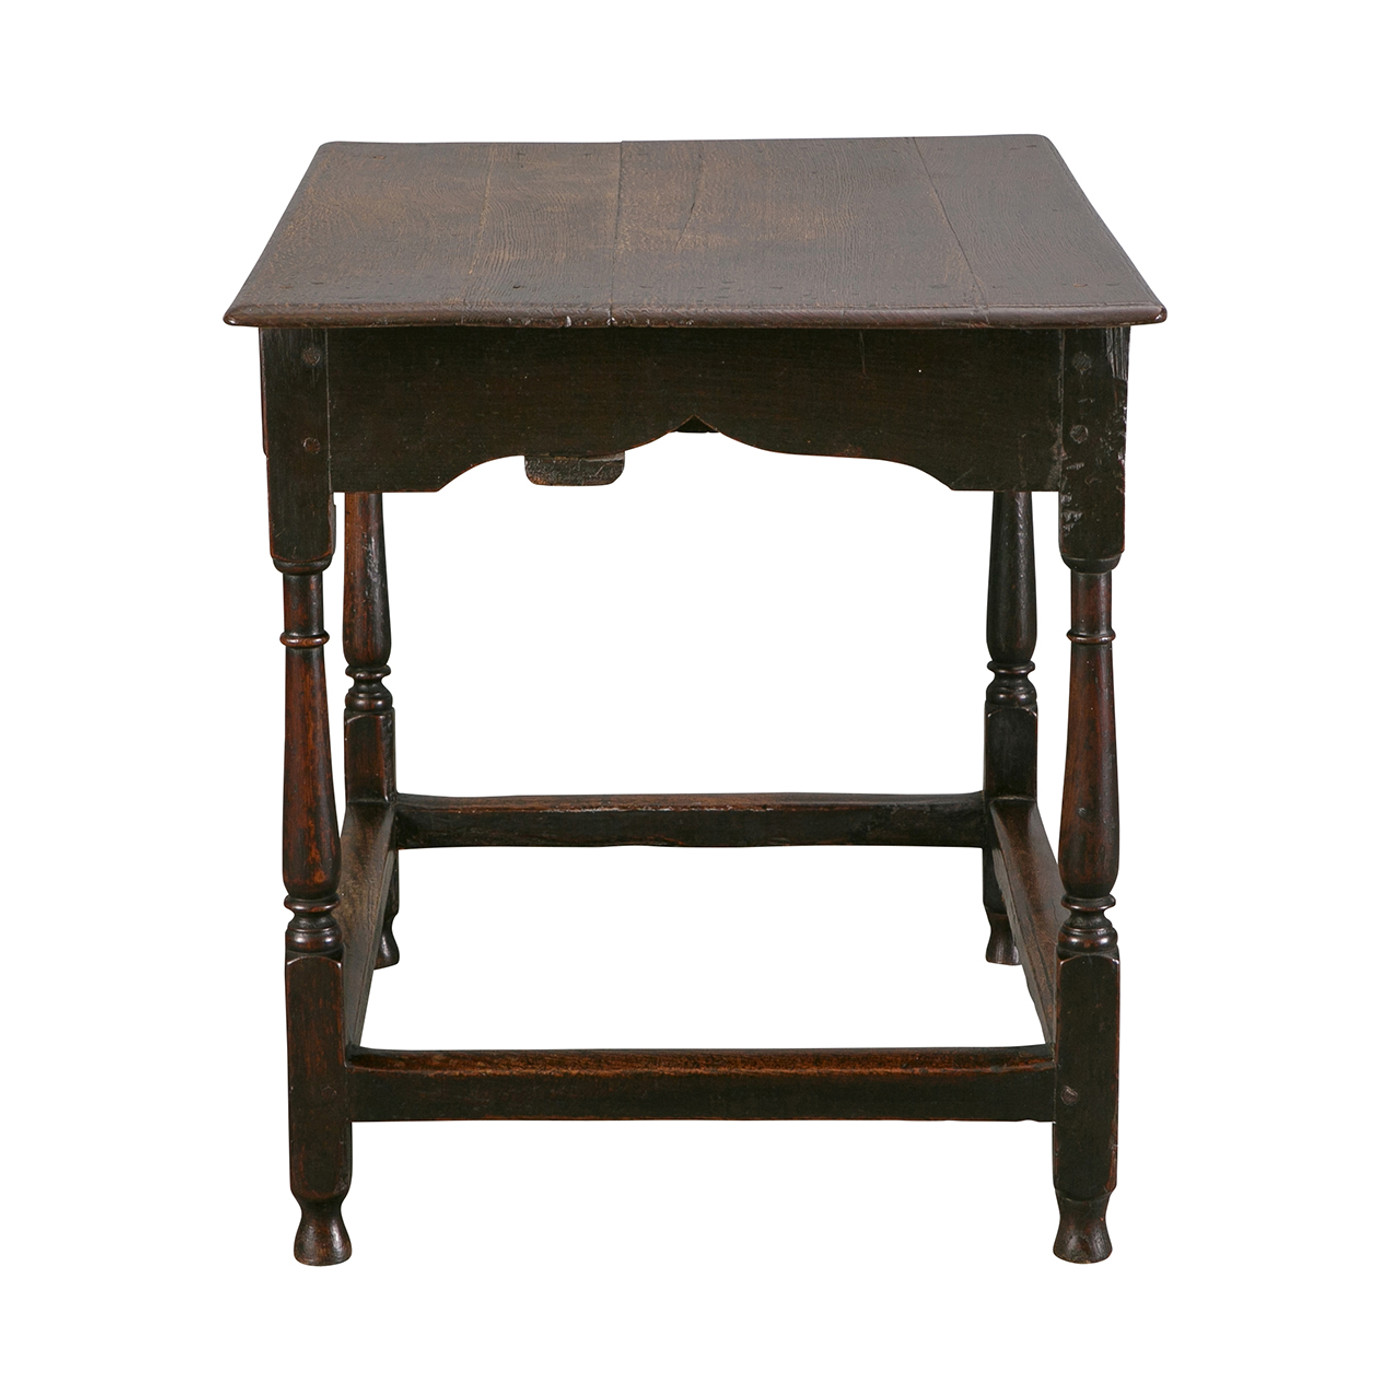 English Oak Table, late 17th c.